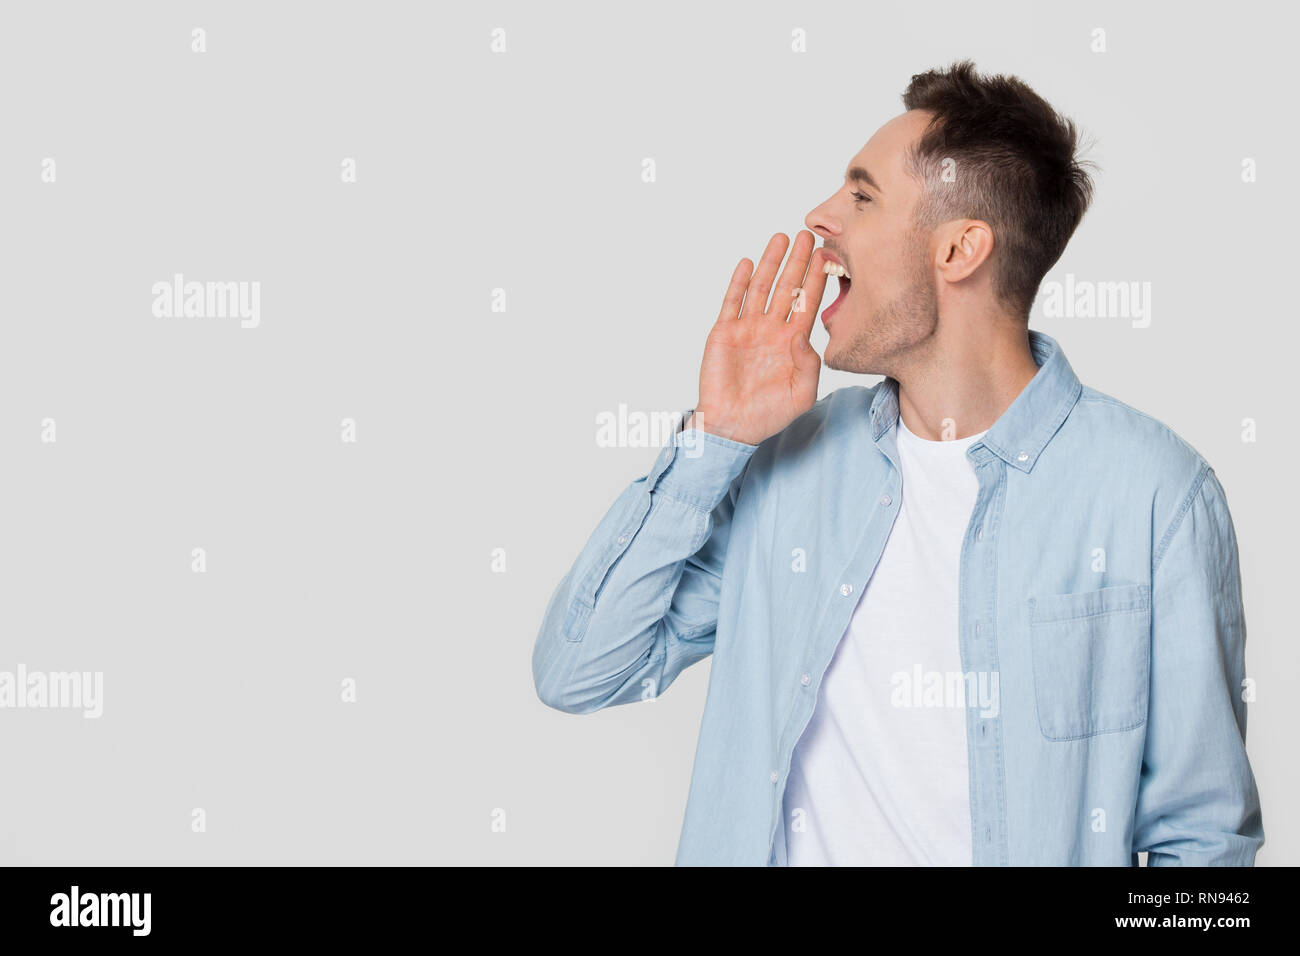 Young man shouting at copyspace making announcement isolated on background - Stock Image